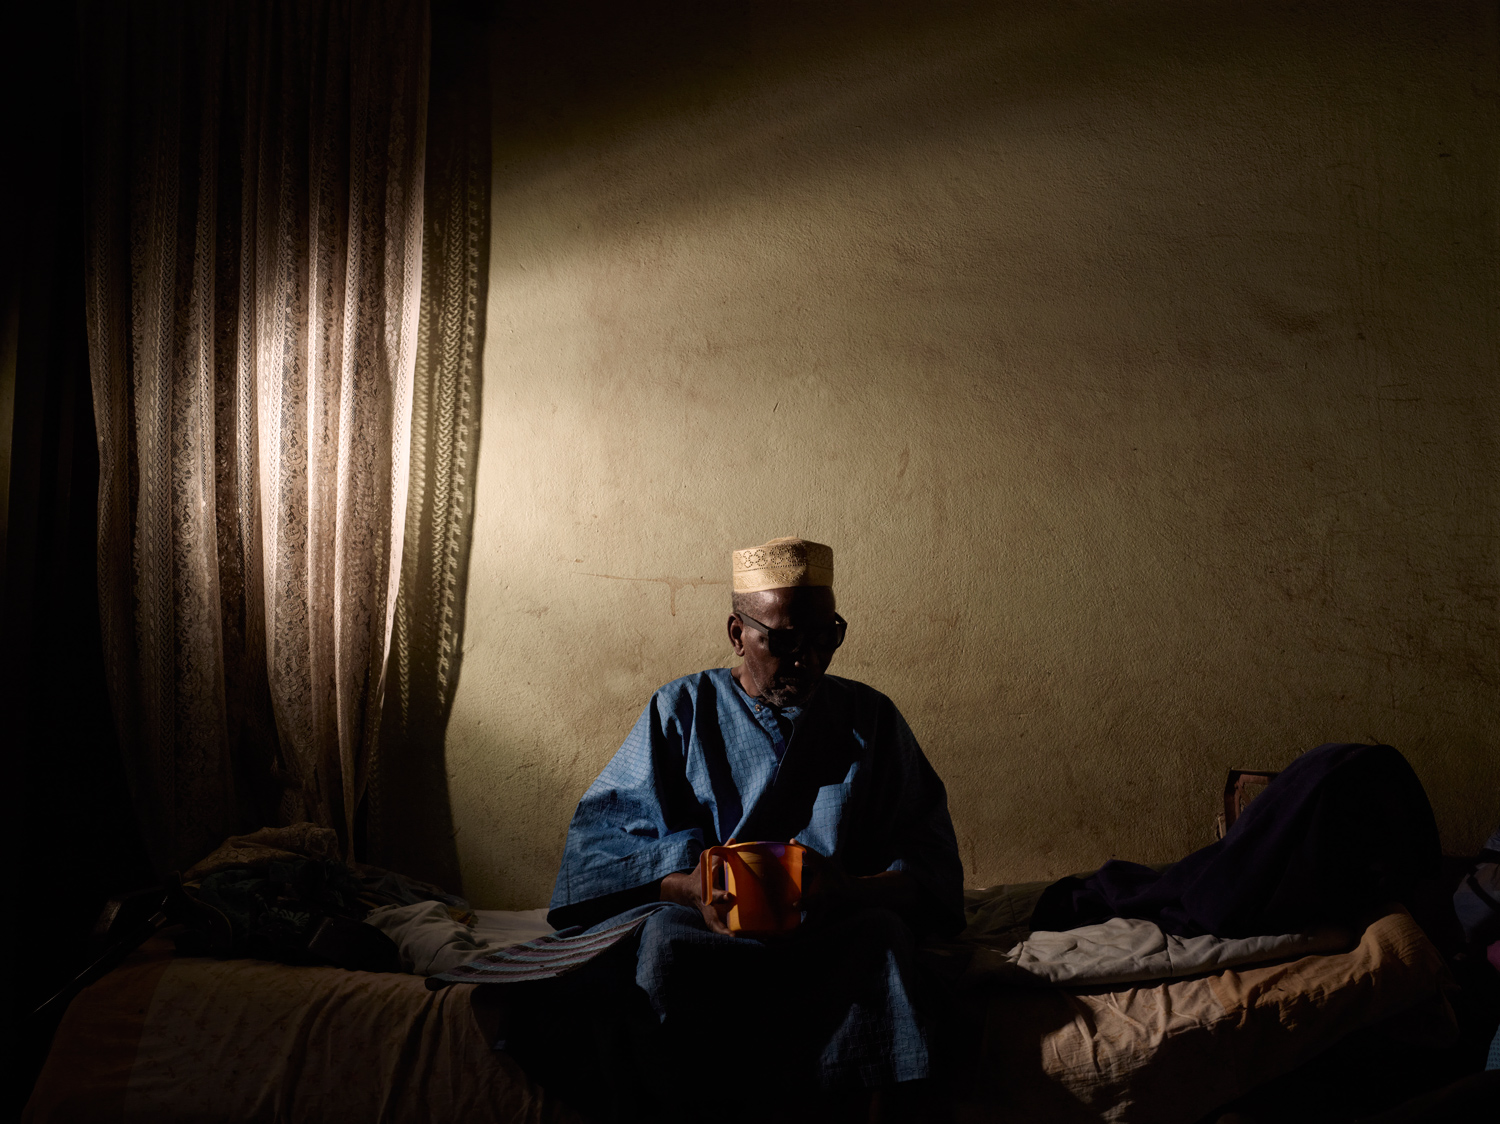 Malick Sidibe sits in his bed in his Bamako home. With temperatures rising to 110 degrees Fahrenheit, the heat take its toll on the aging Sidibe. His younger brother Samba and his sons help keep him cool using a hand fan.